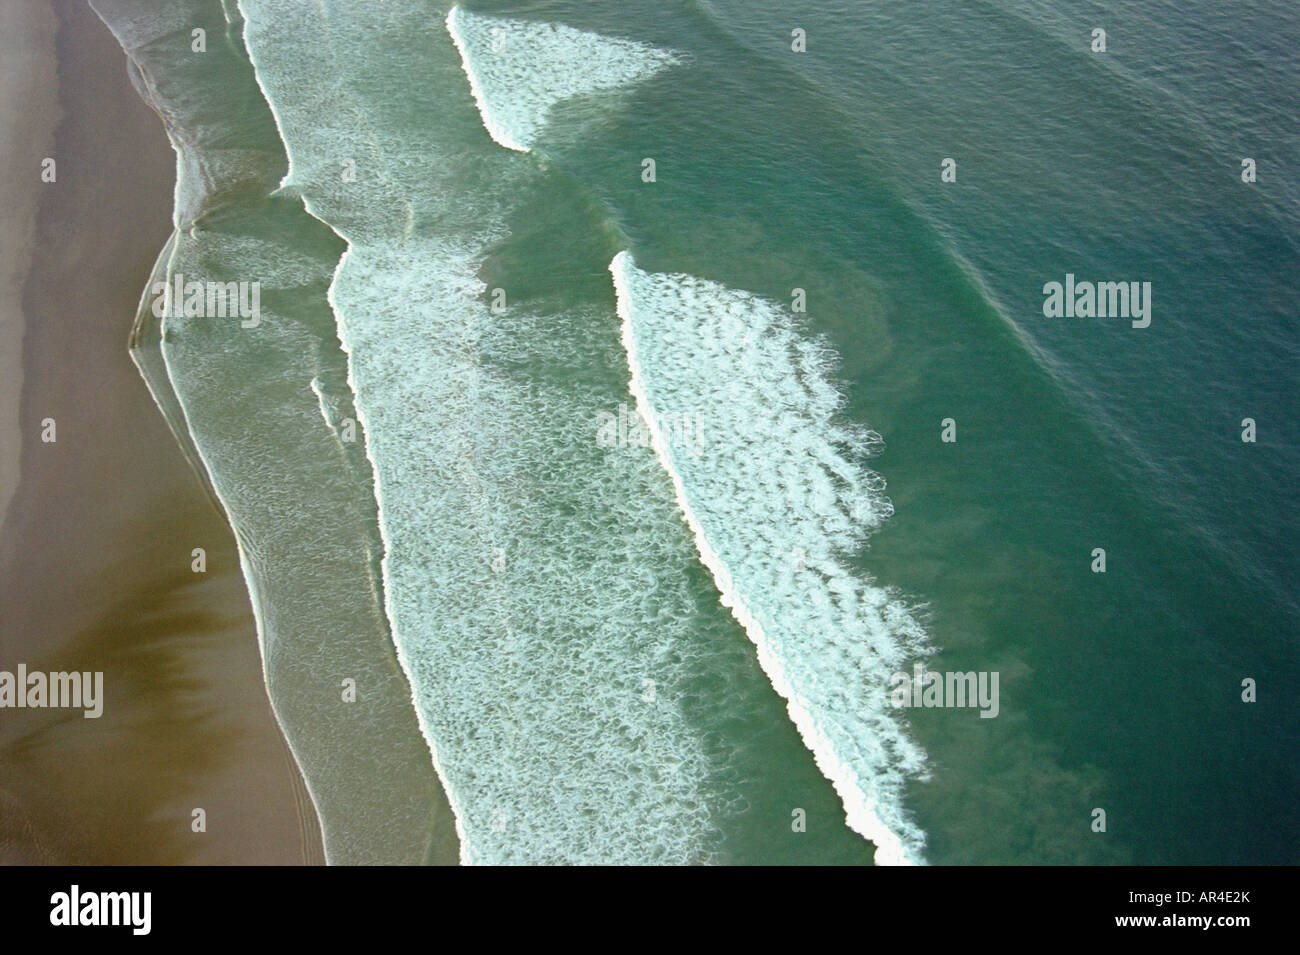 Aerial shot of a beach - Stock Image